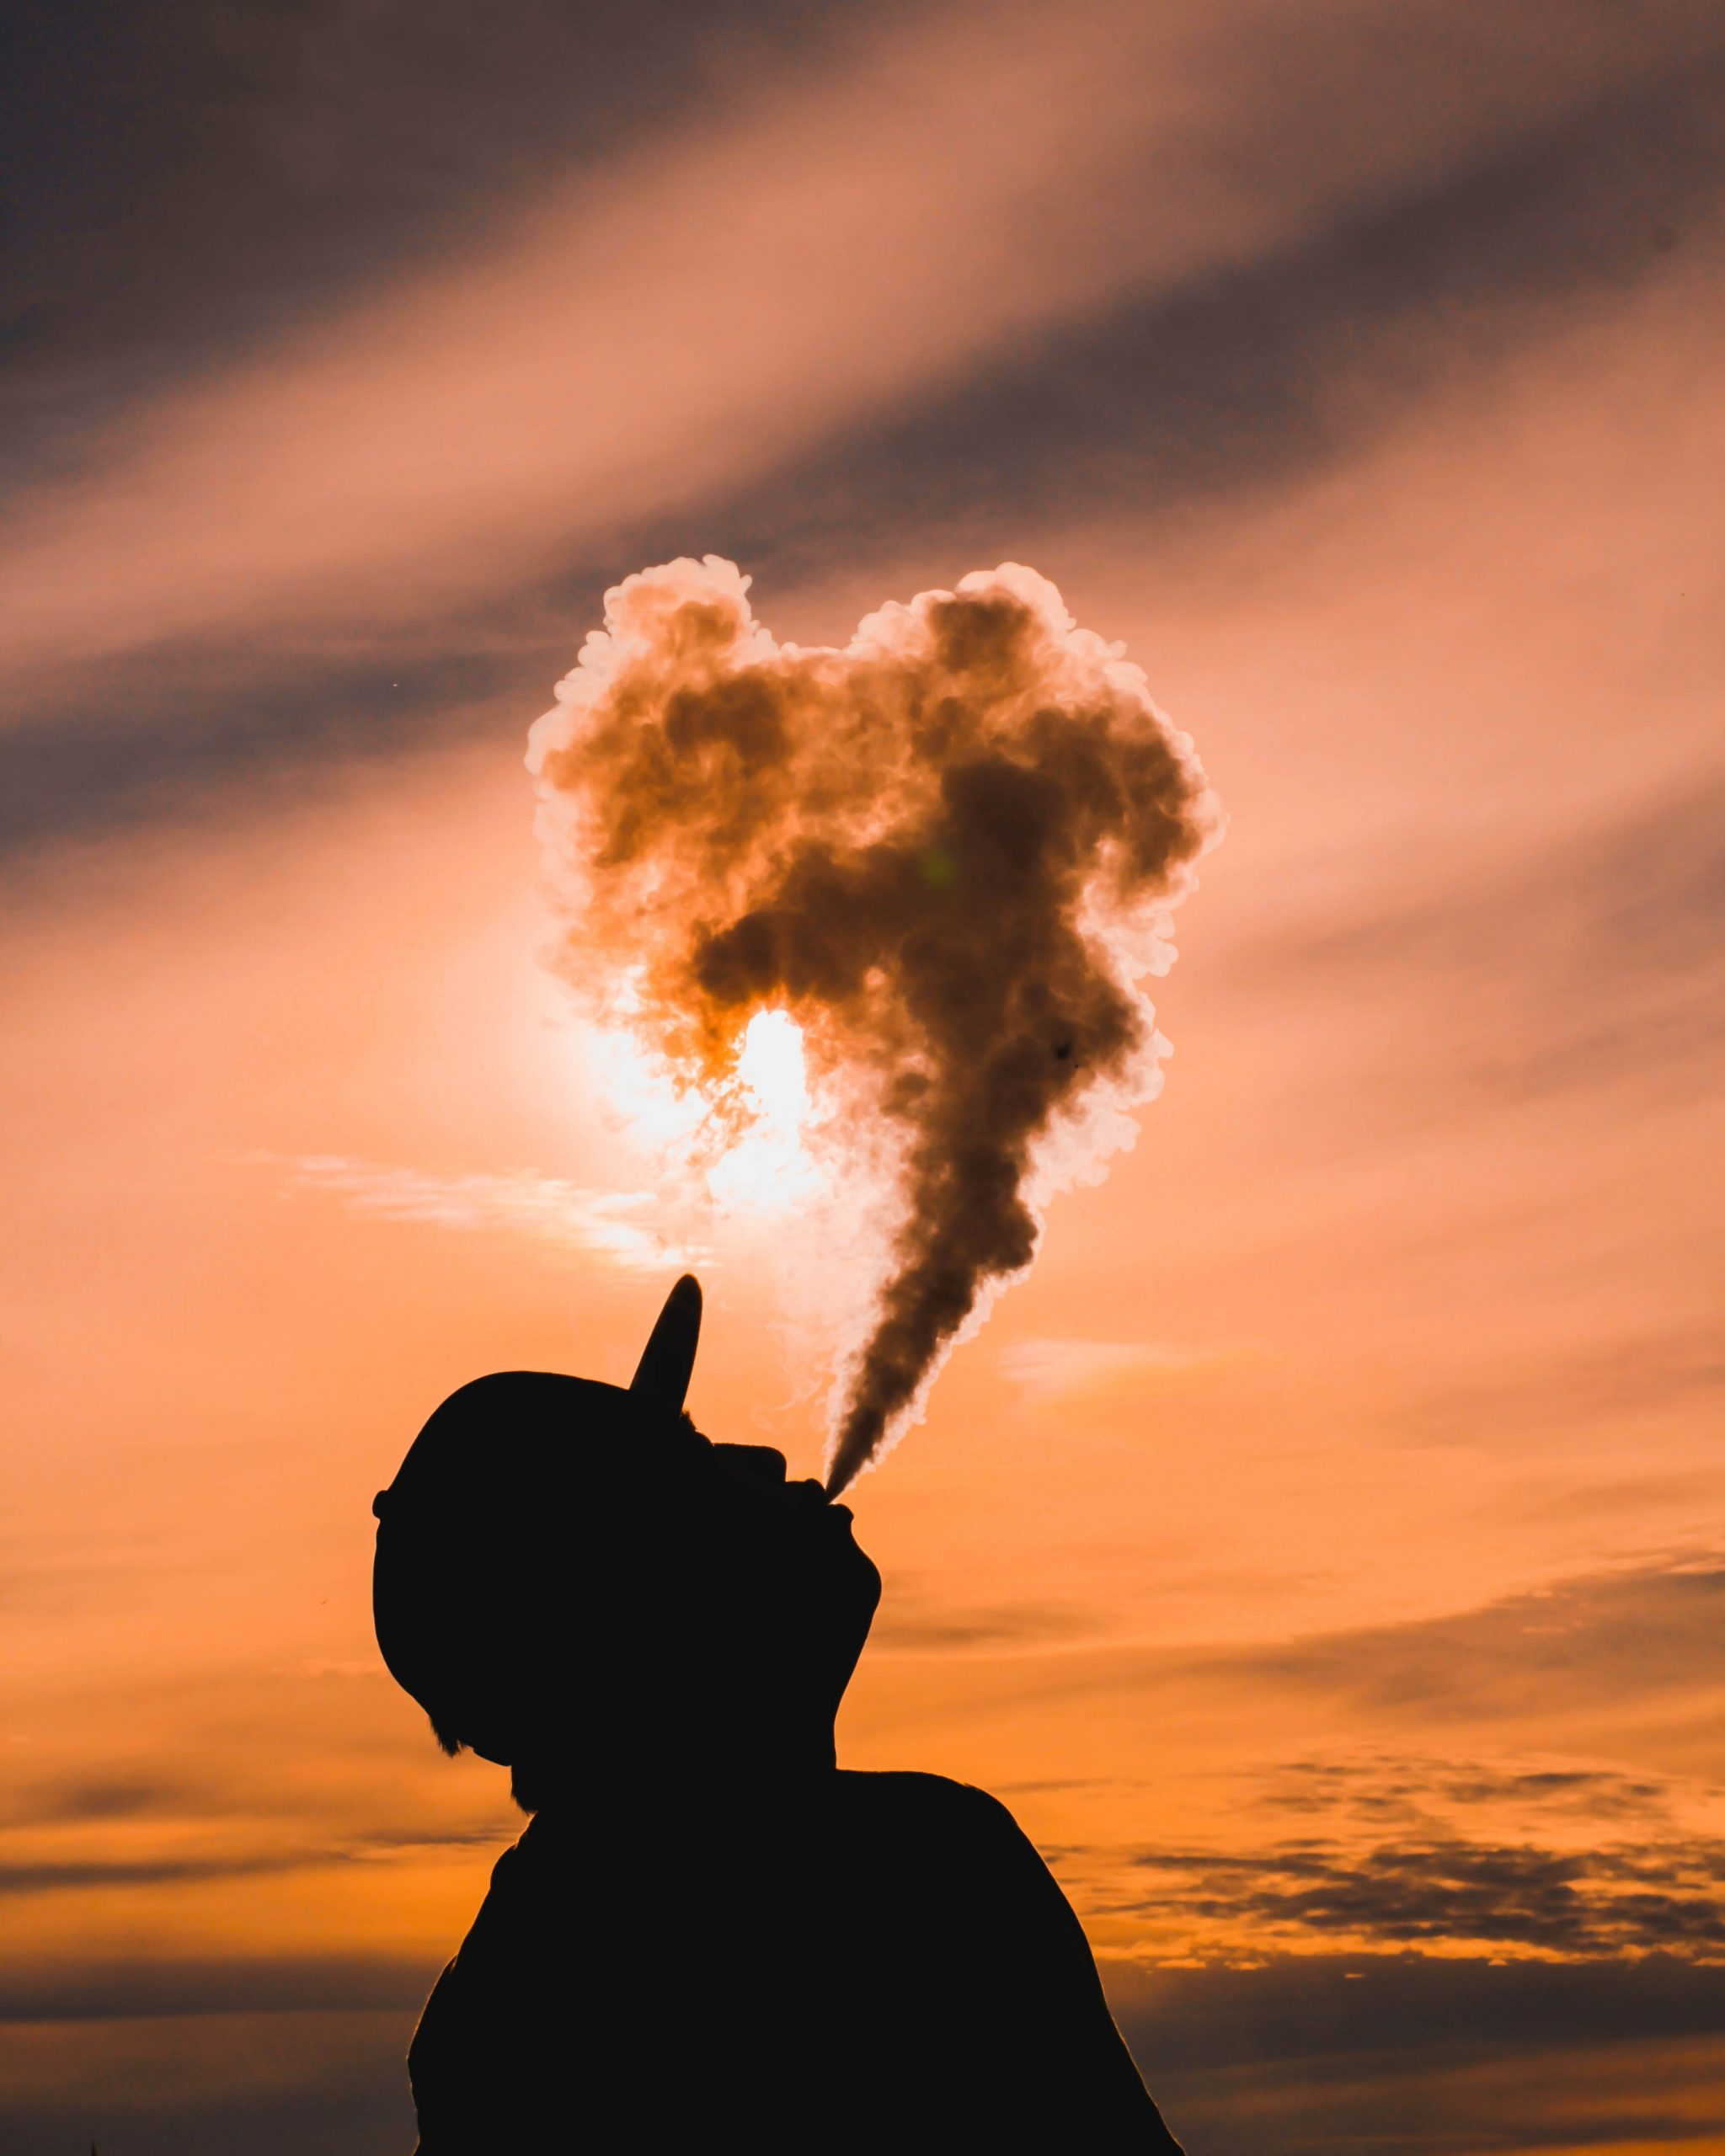 A person wearing a cap blows a vape into the air